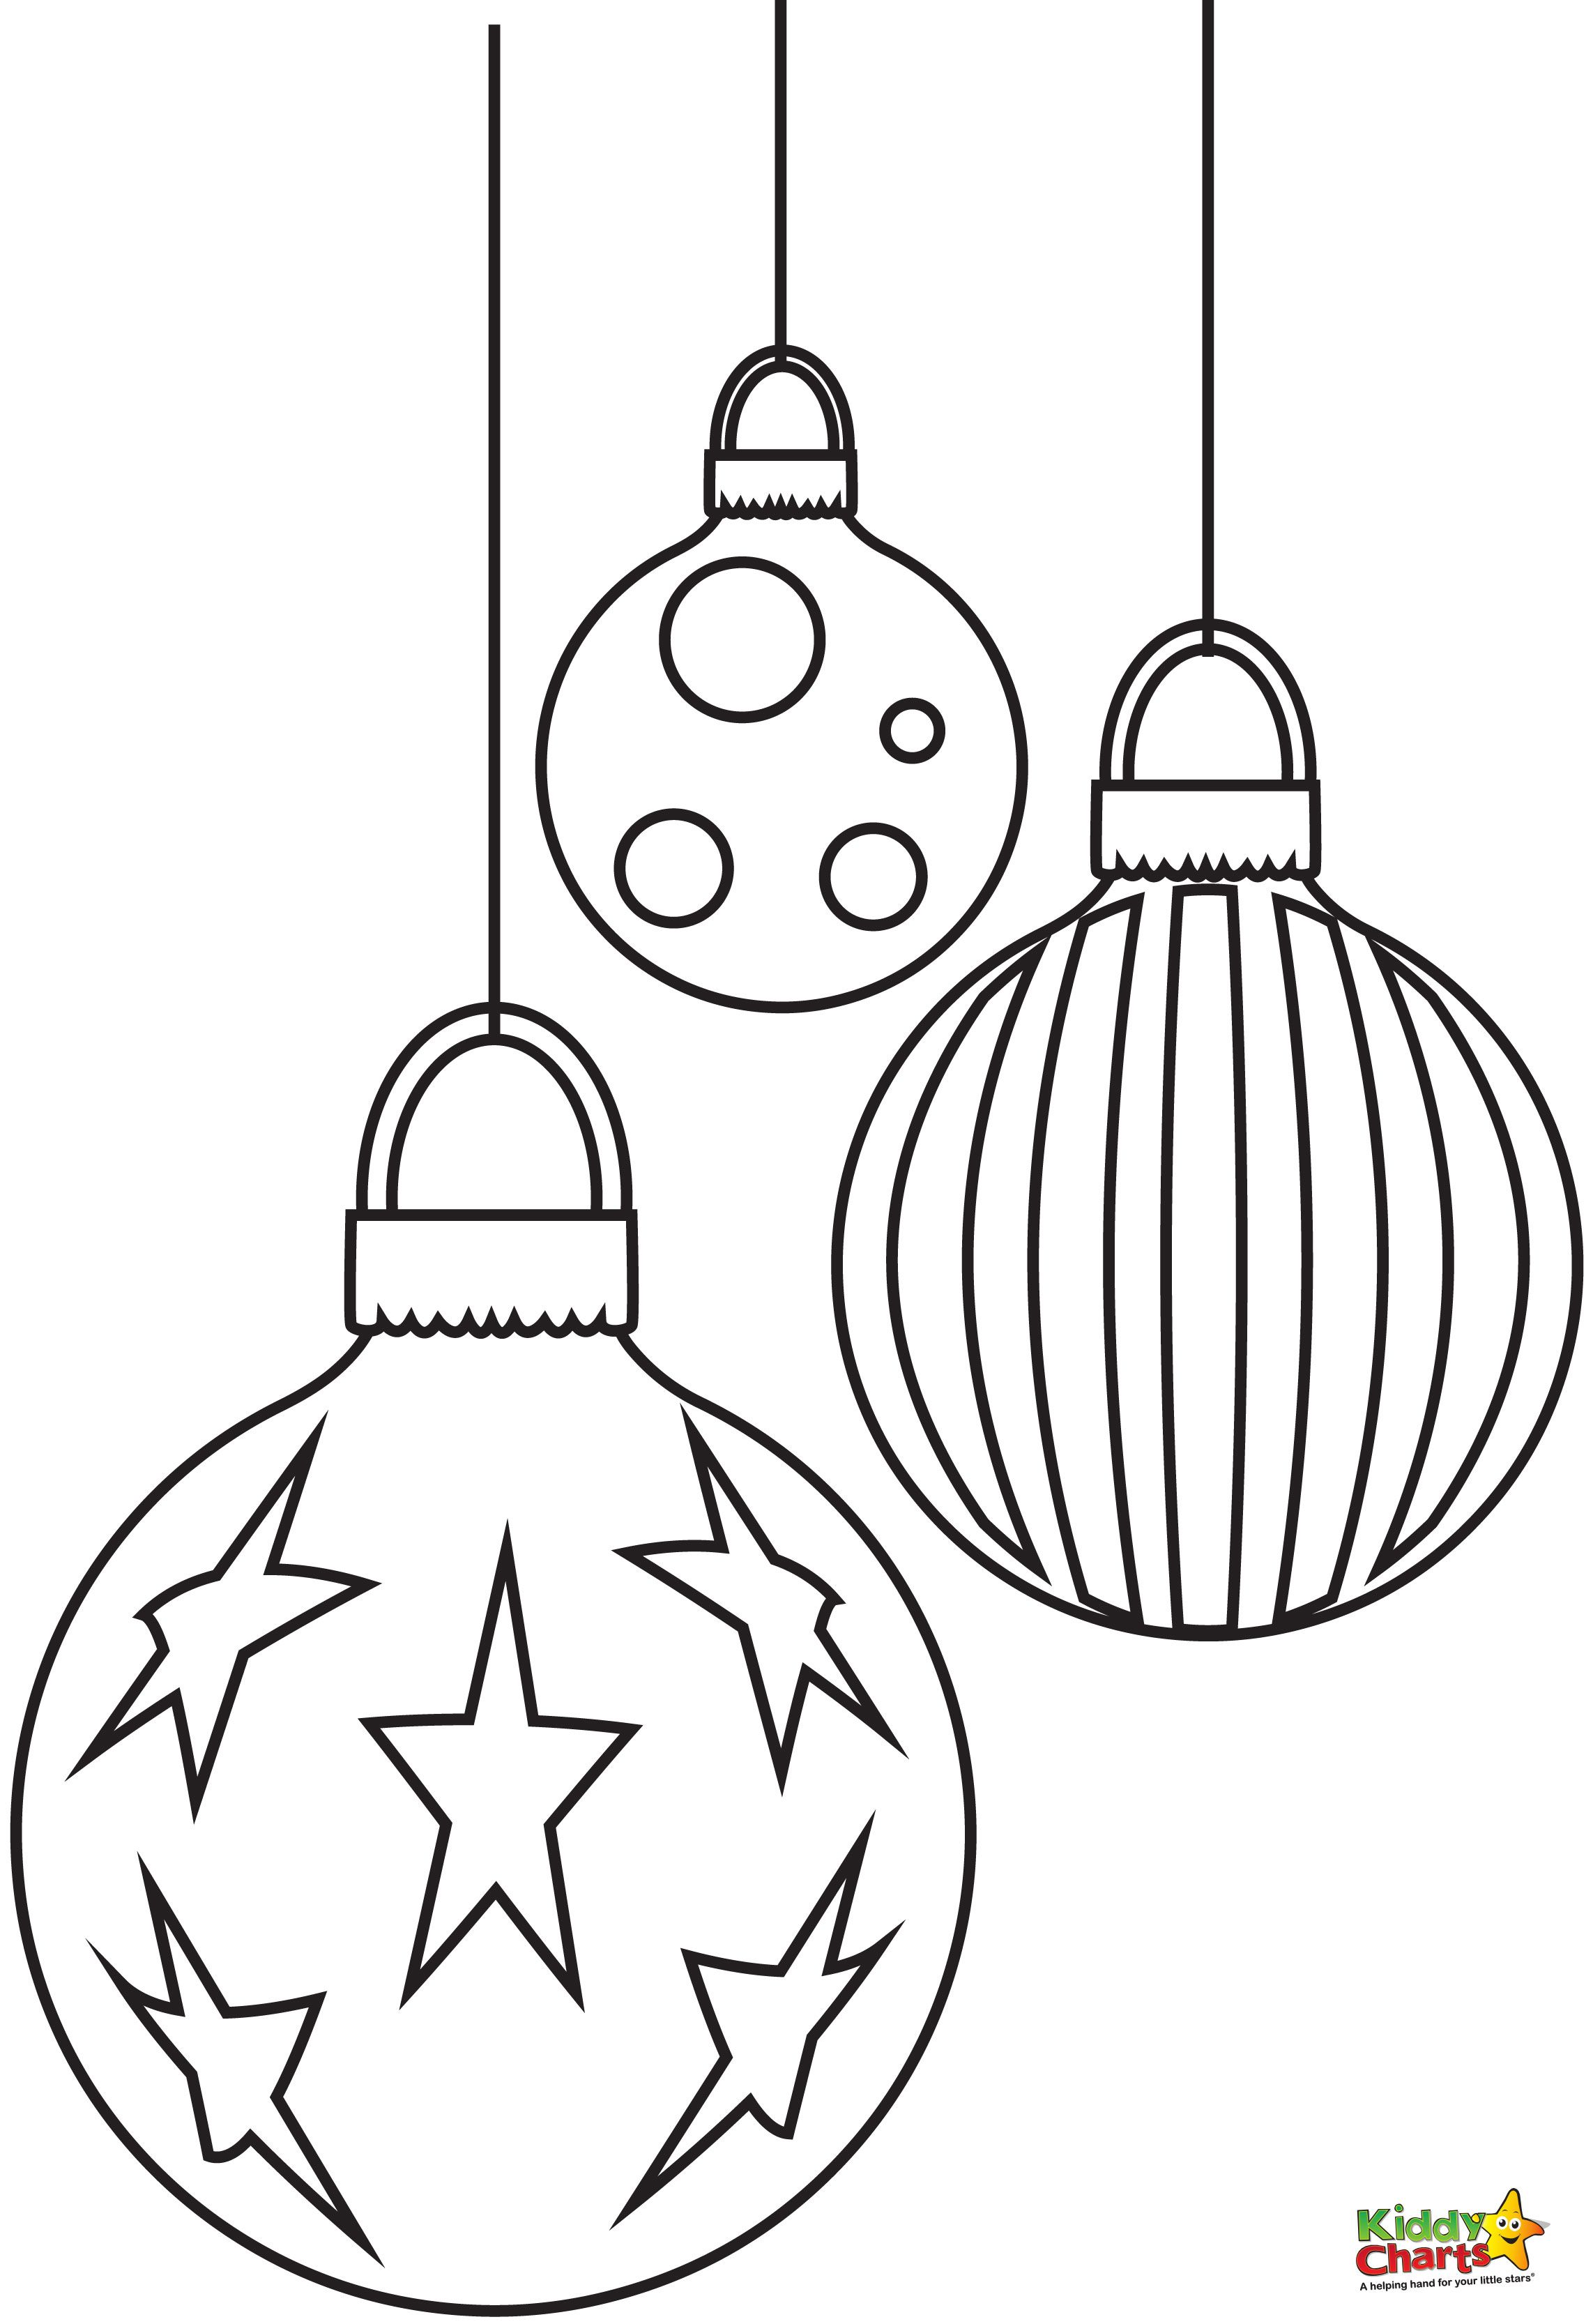 Baubles - Free Christmas Coloring Pages From | Winter Art